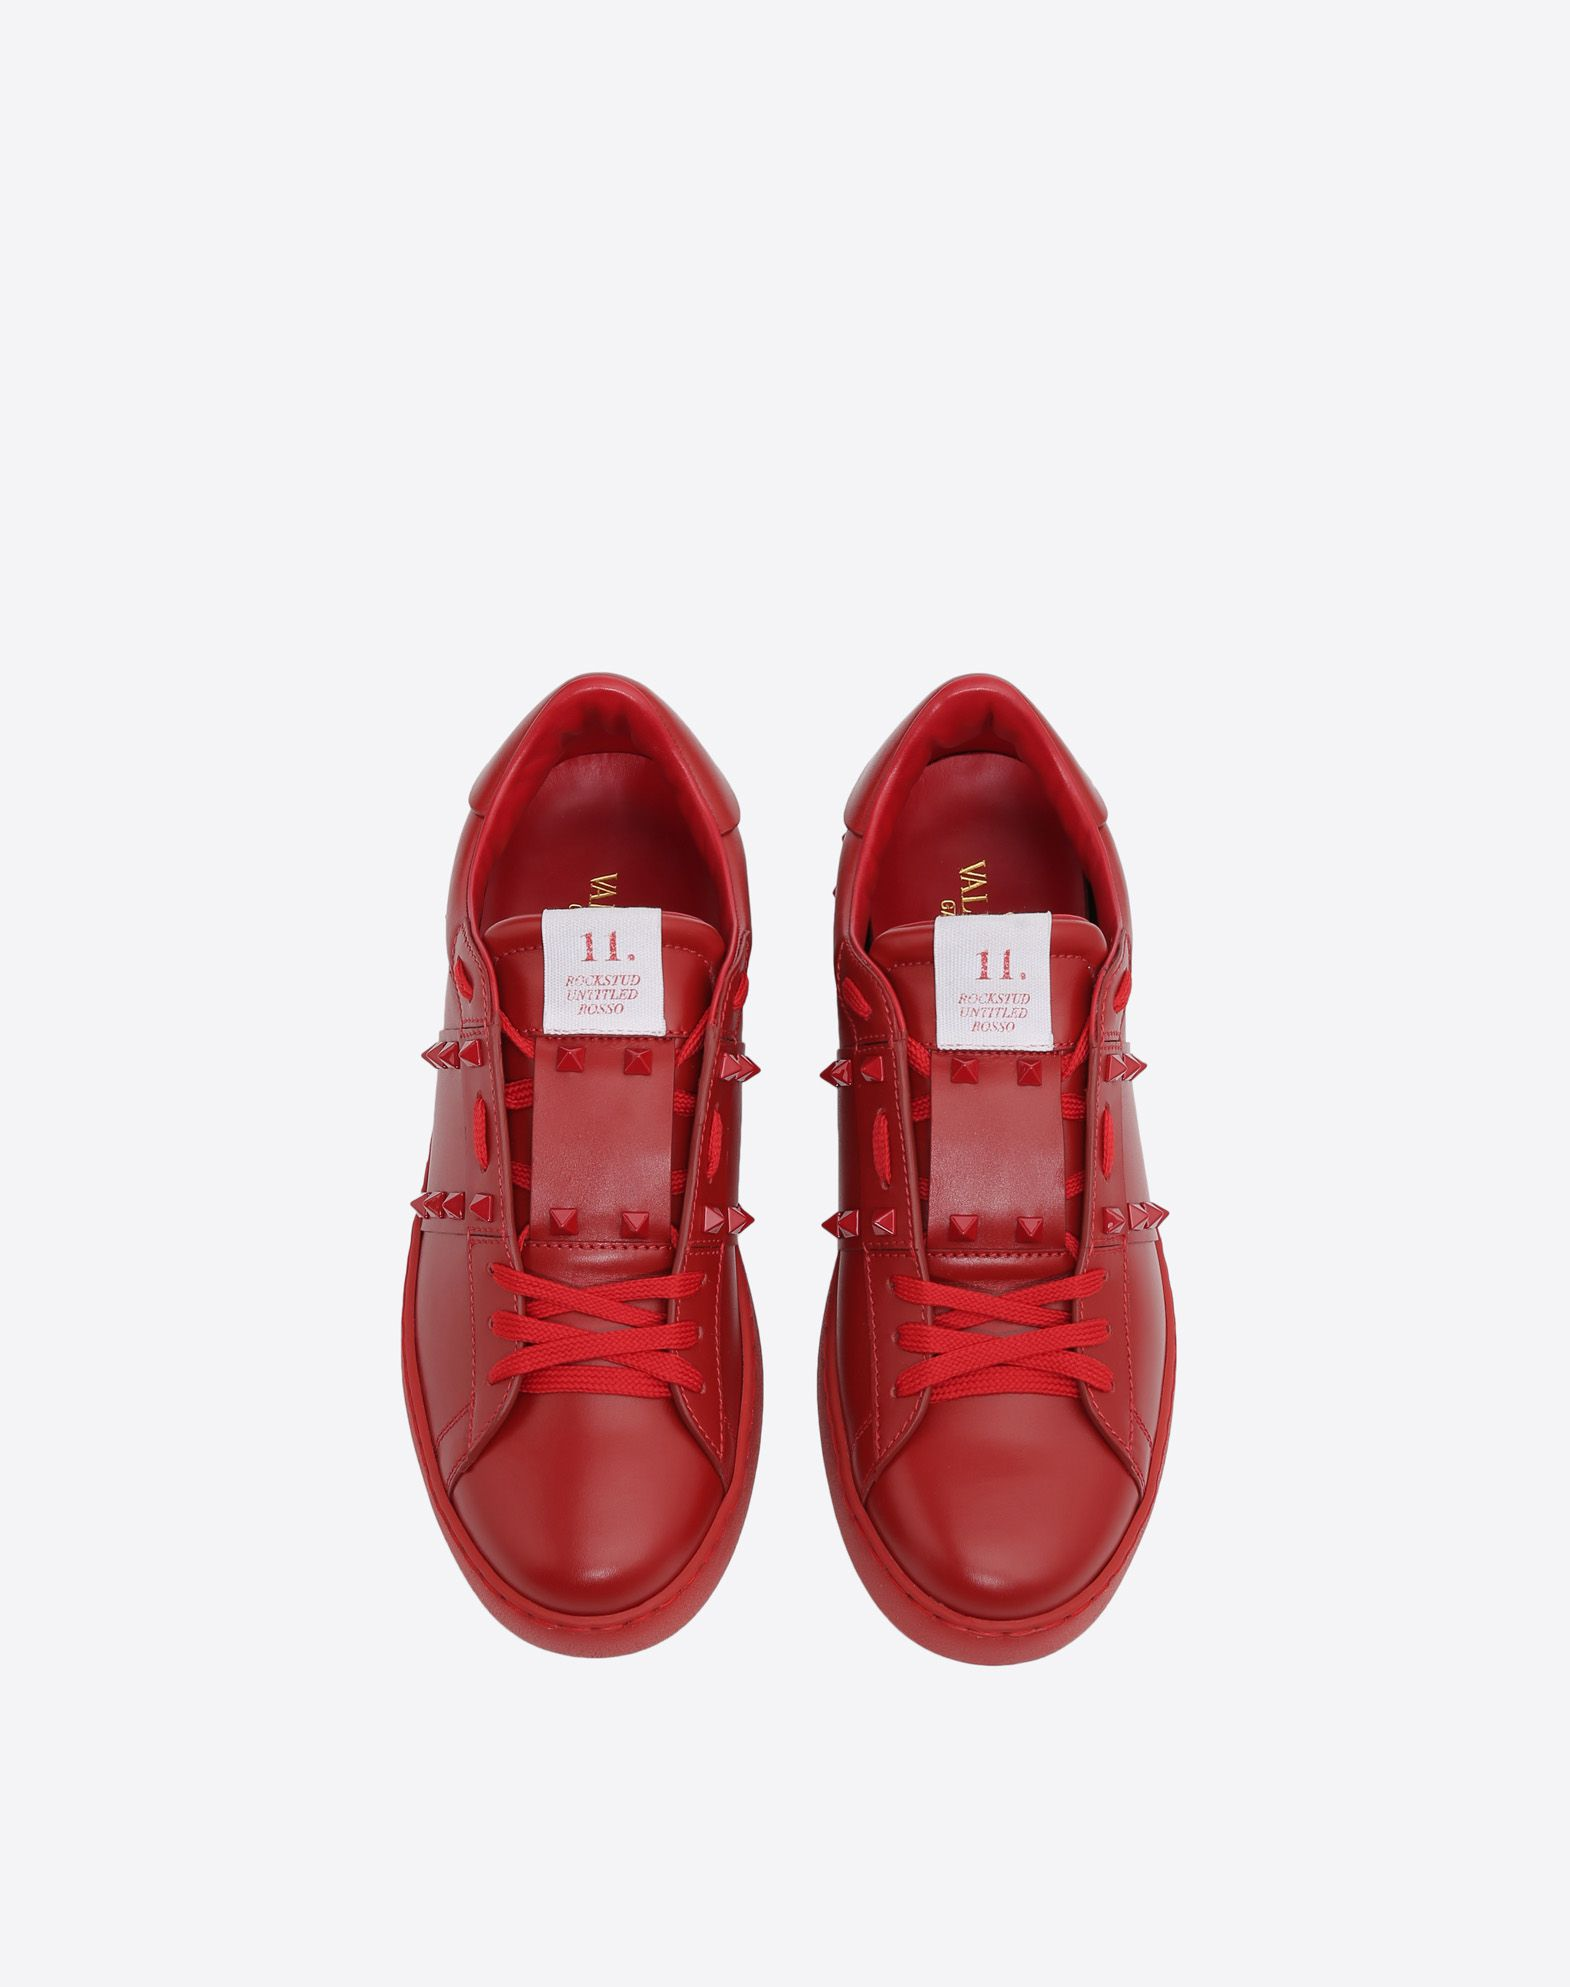 VALENTINO GARAVANI UOMO Sneakers Rockstud Untitled Rosso LOW-TOP SNEAKERS U e